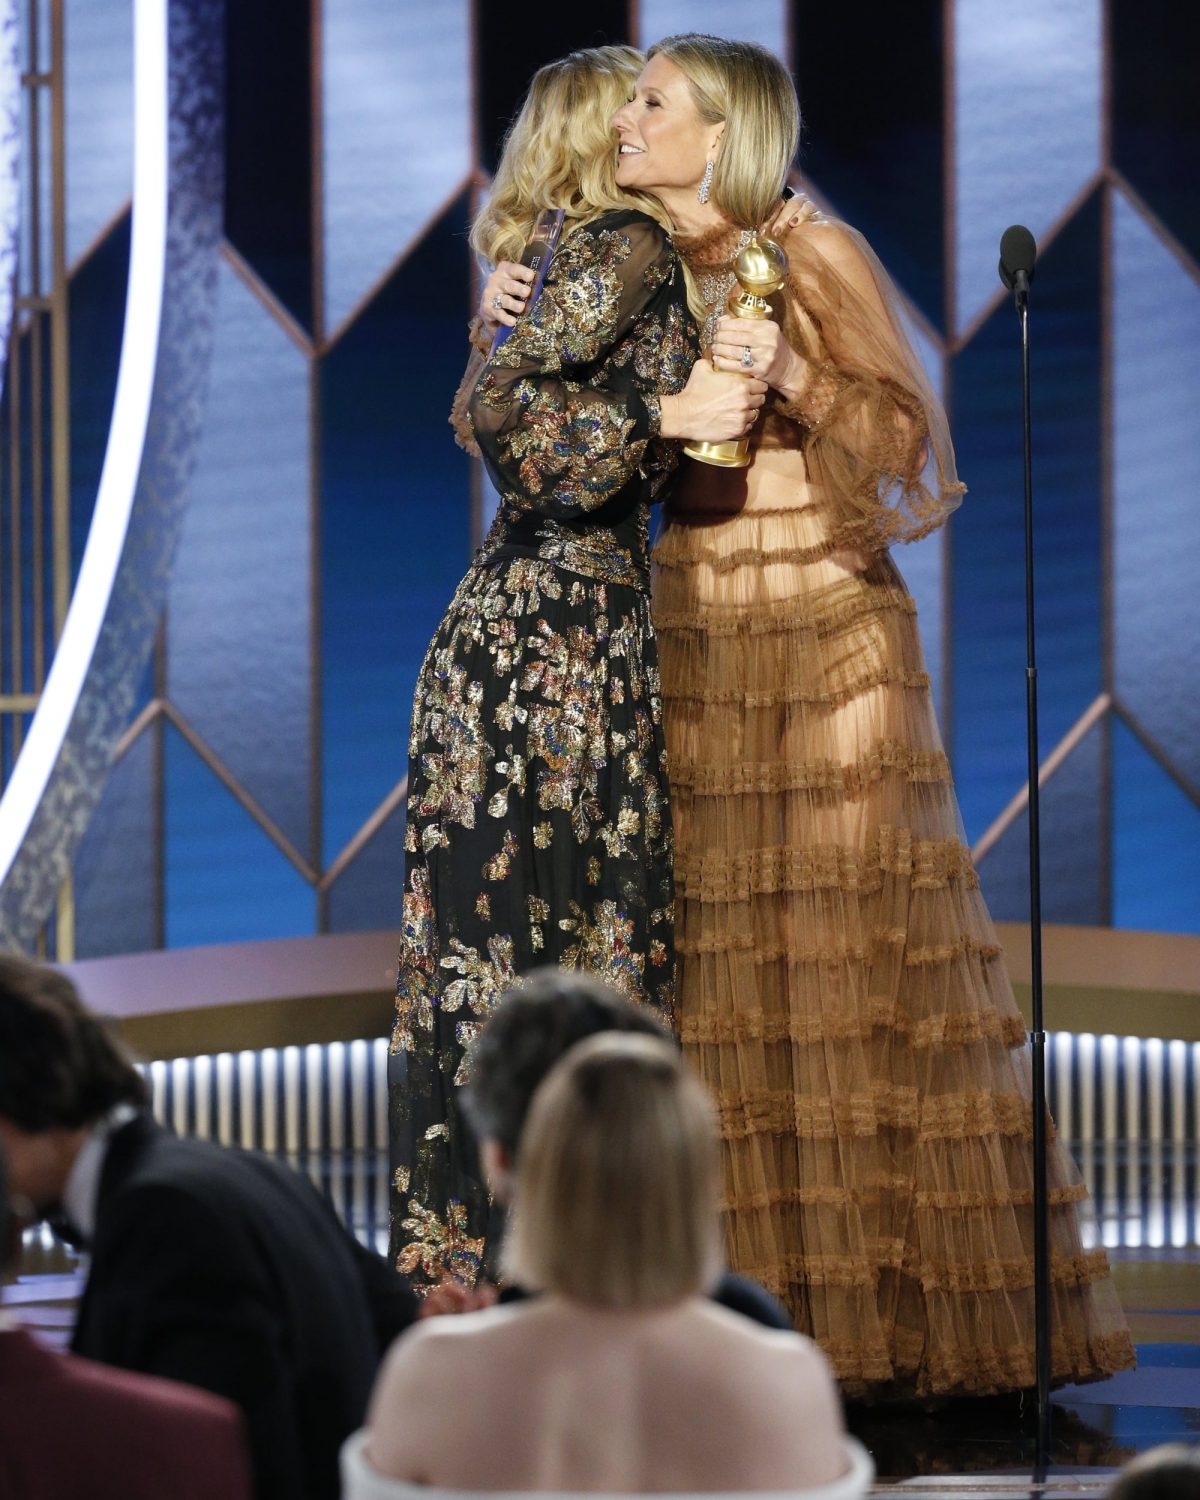 Laura Dern Gwyneth Paltrow at 2020 Golden Globes 1200x1500 - 7 Lovely Moments of the Golden Globes